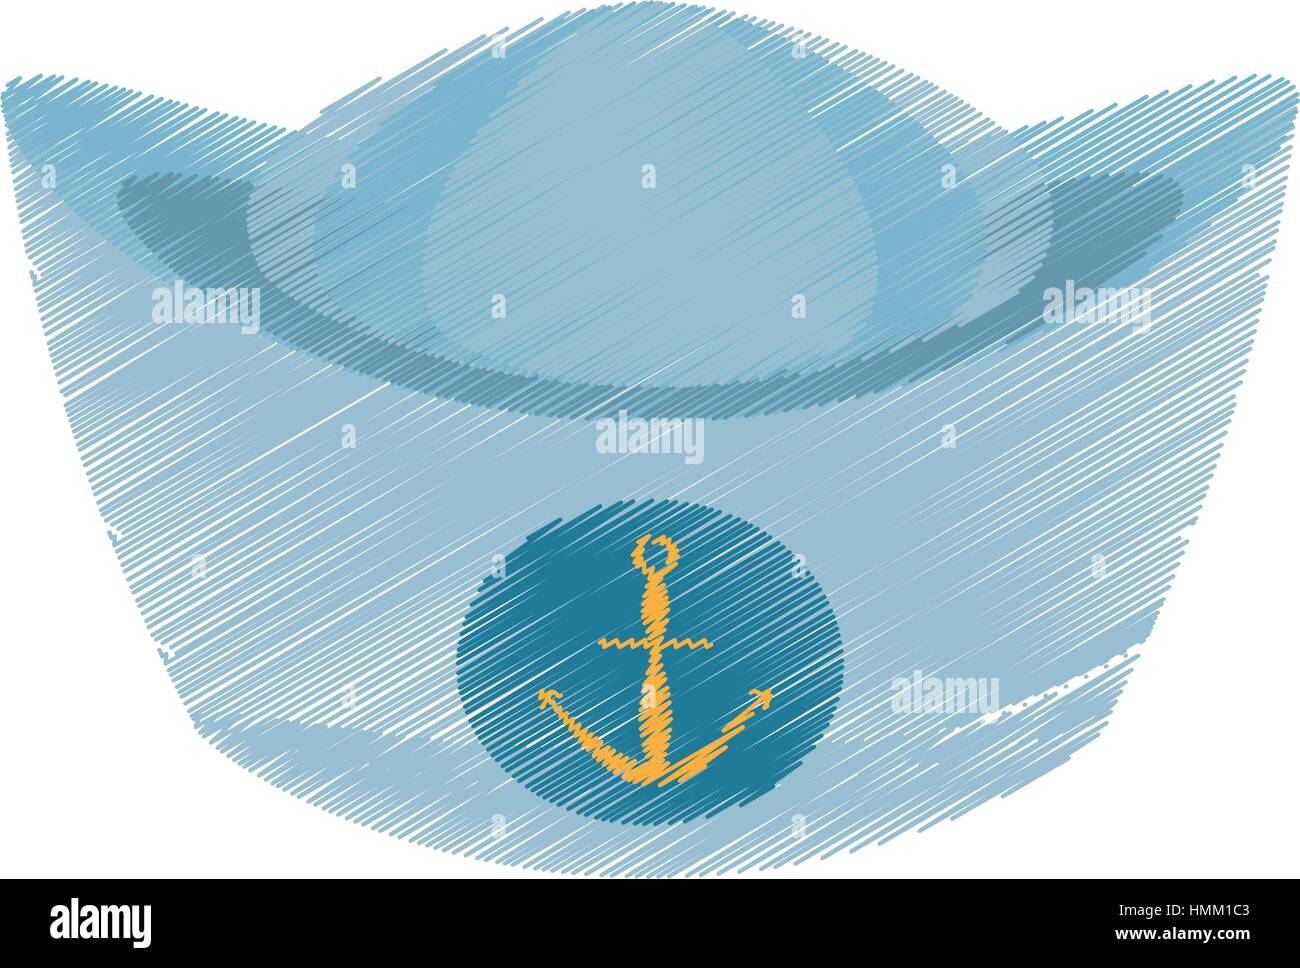 Sailor stock photos illustrations and vector art - Drawing Sailor Cap Nautical Anchor Design Vector Illustration Eps 10 Stock Vector